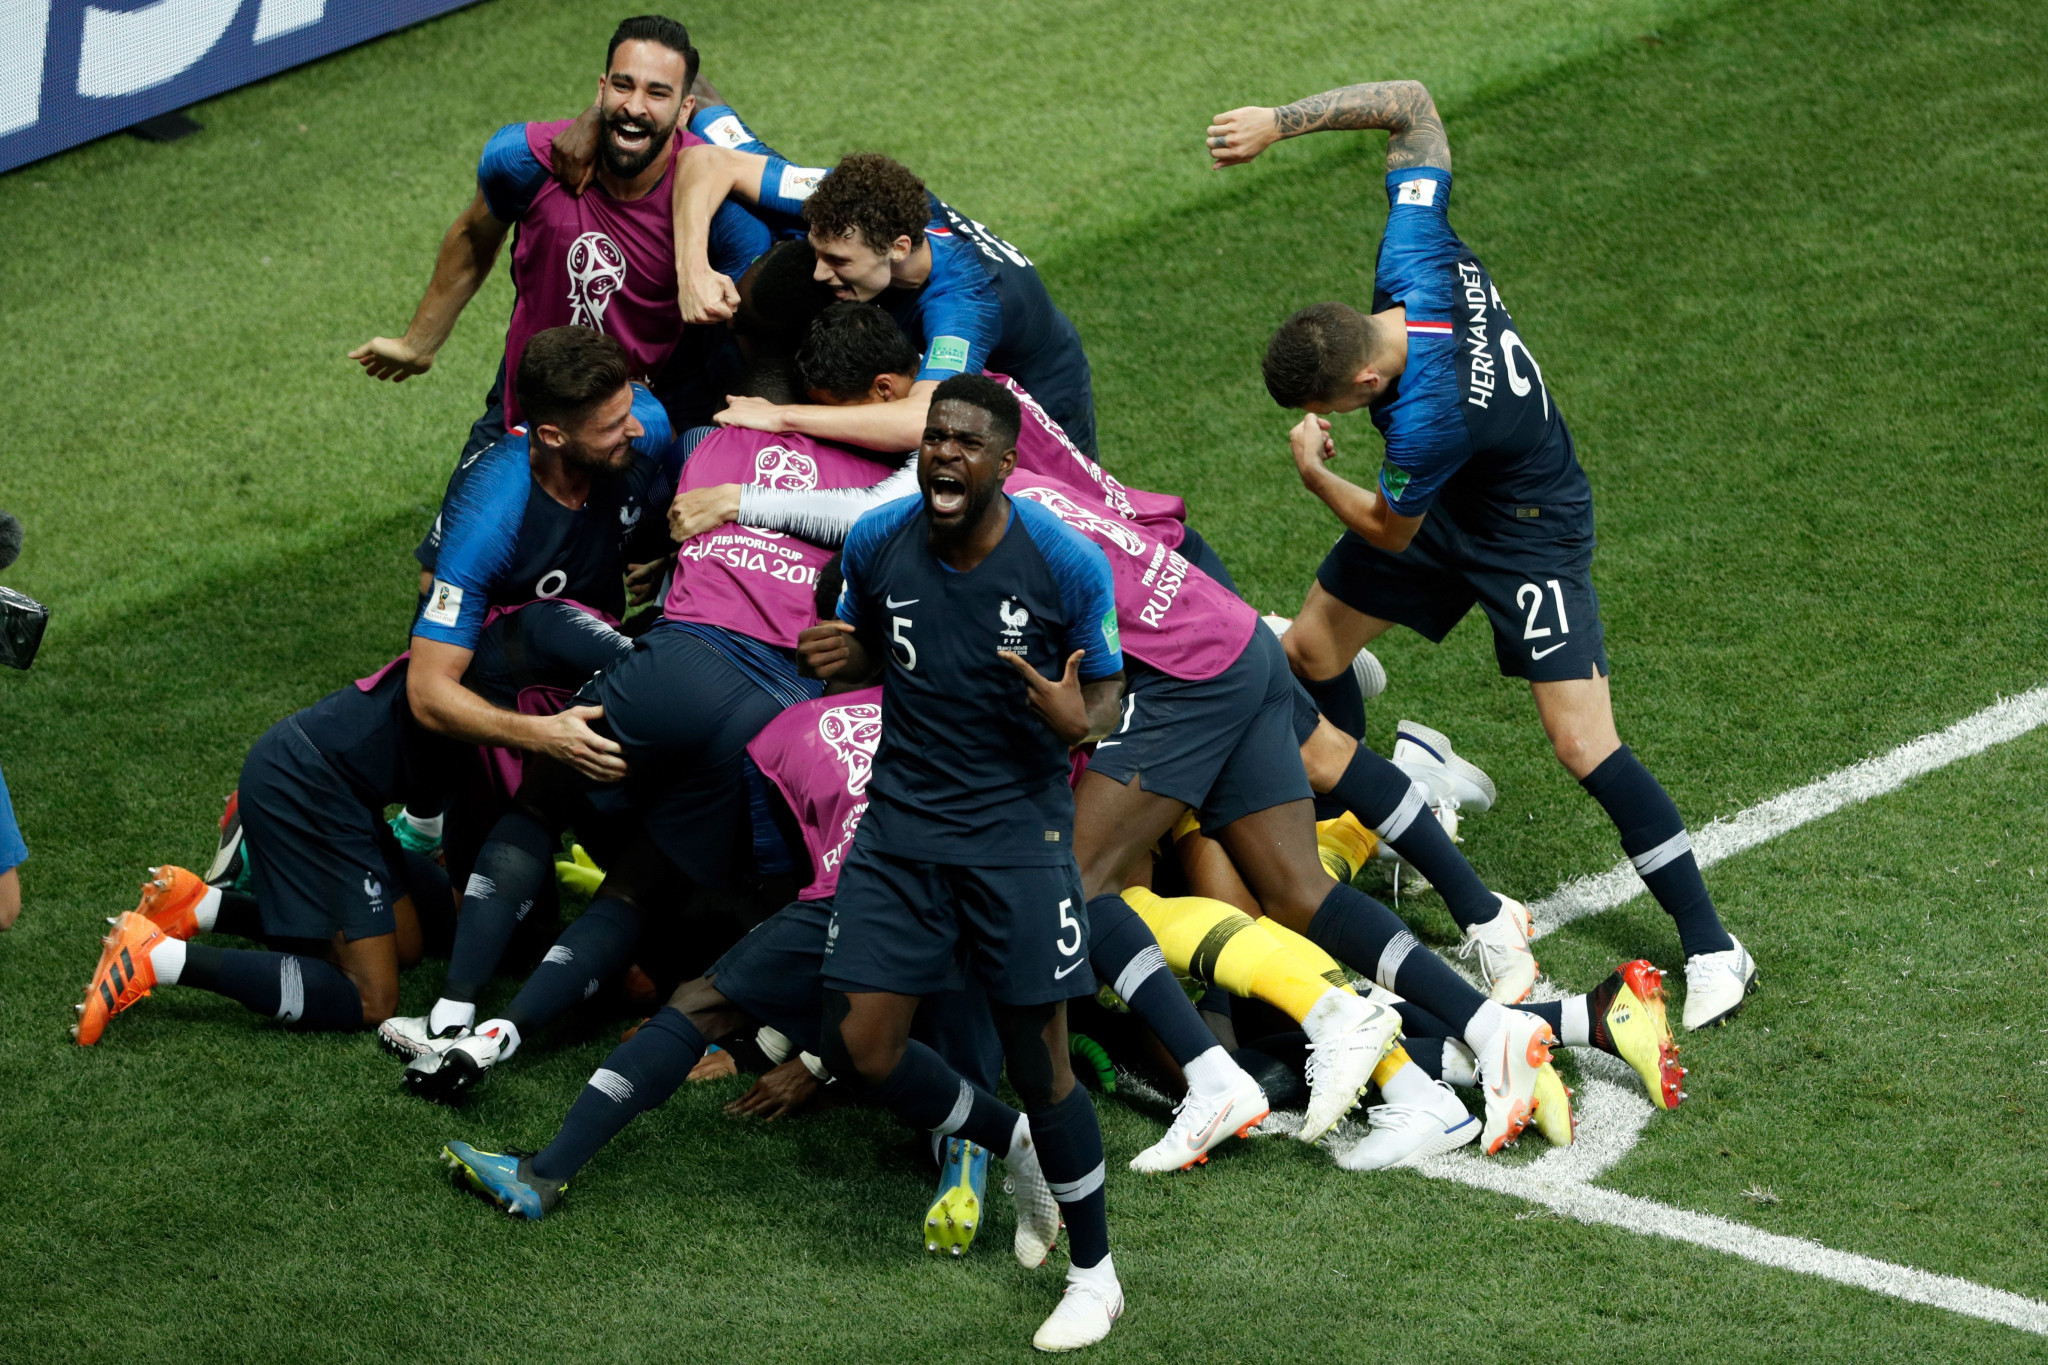 Goals from Paul Pogba and Kylian Mbappe saw France pull clear ©Getty Images